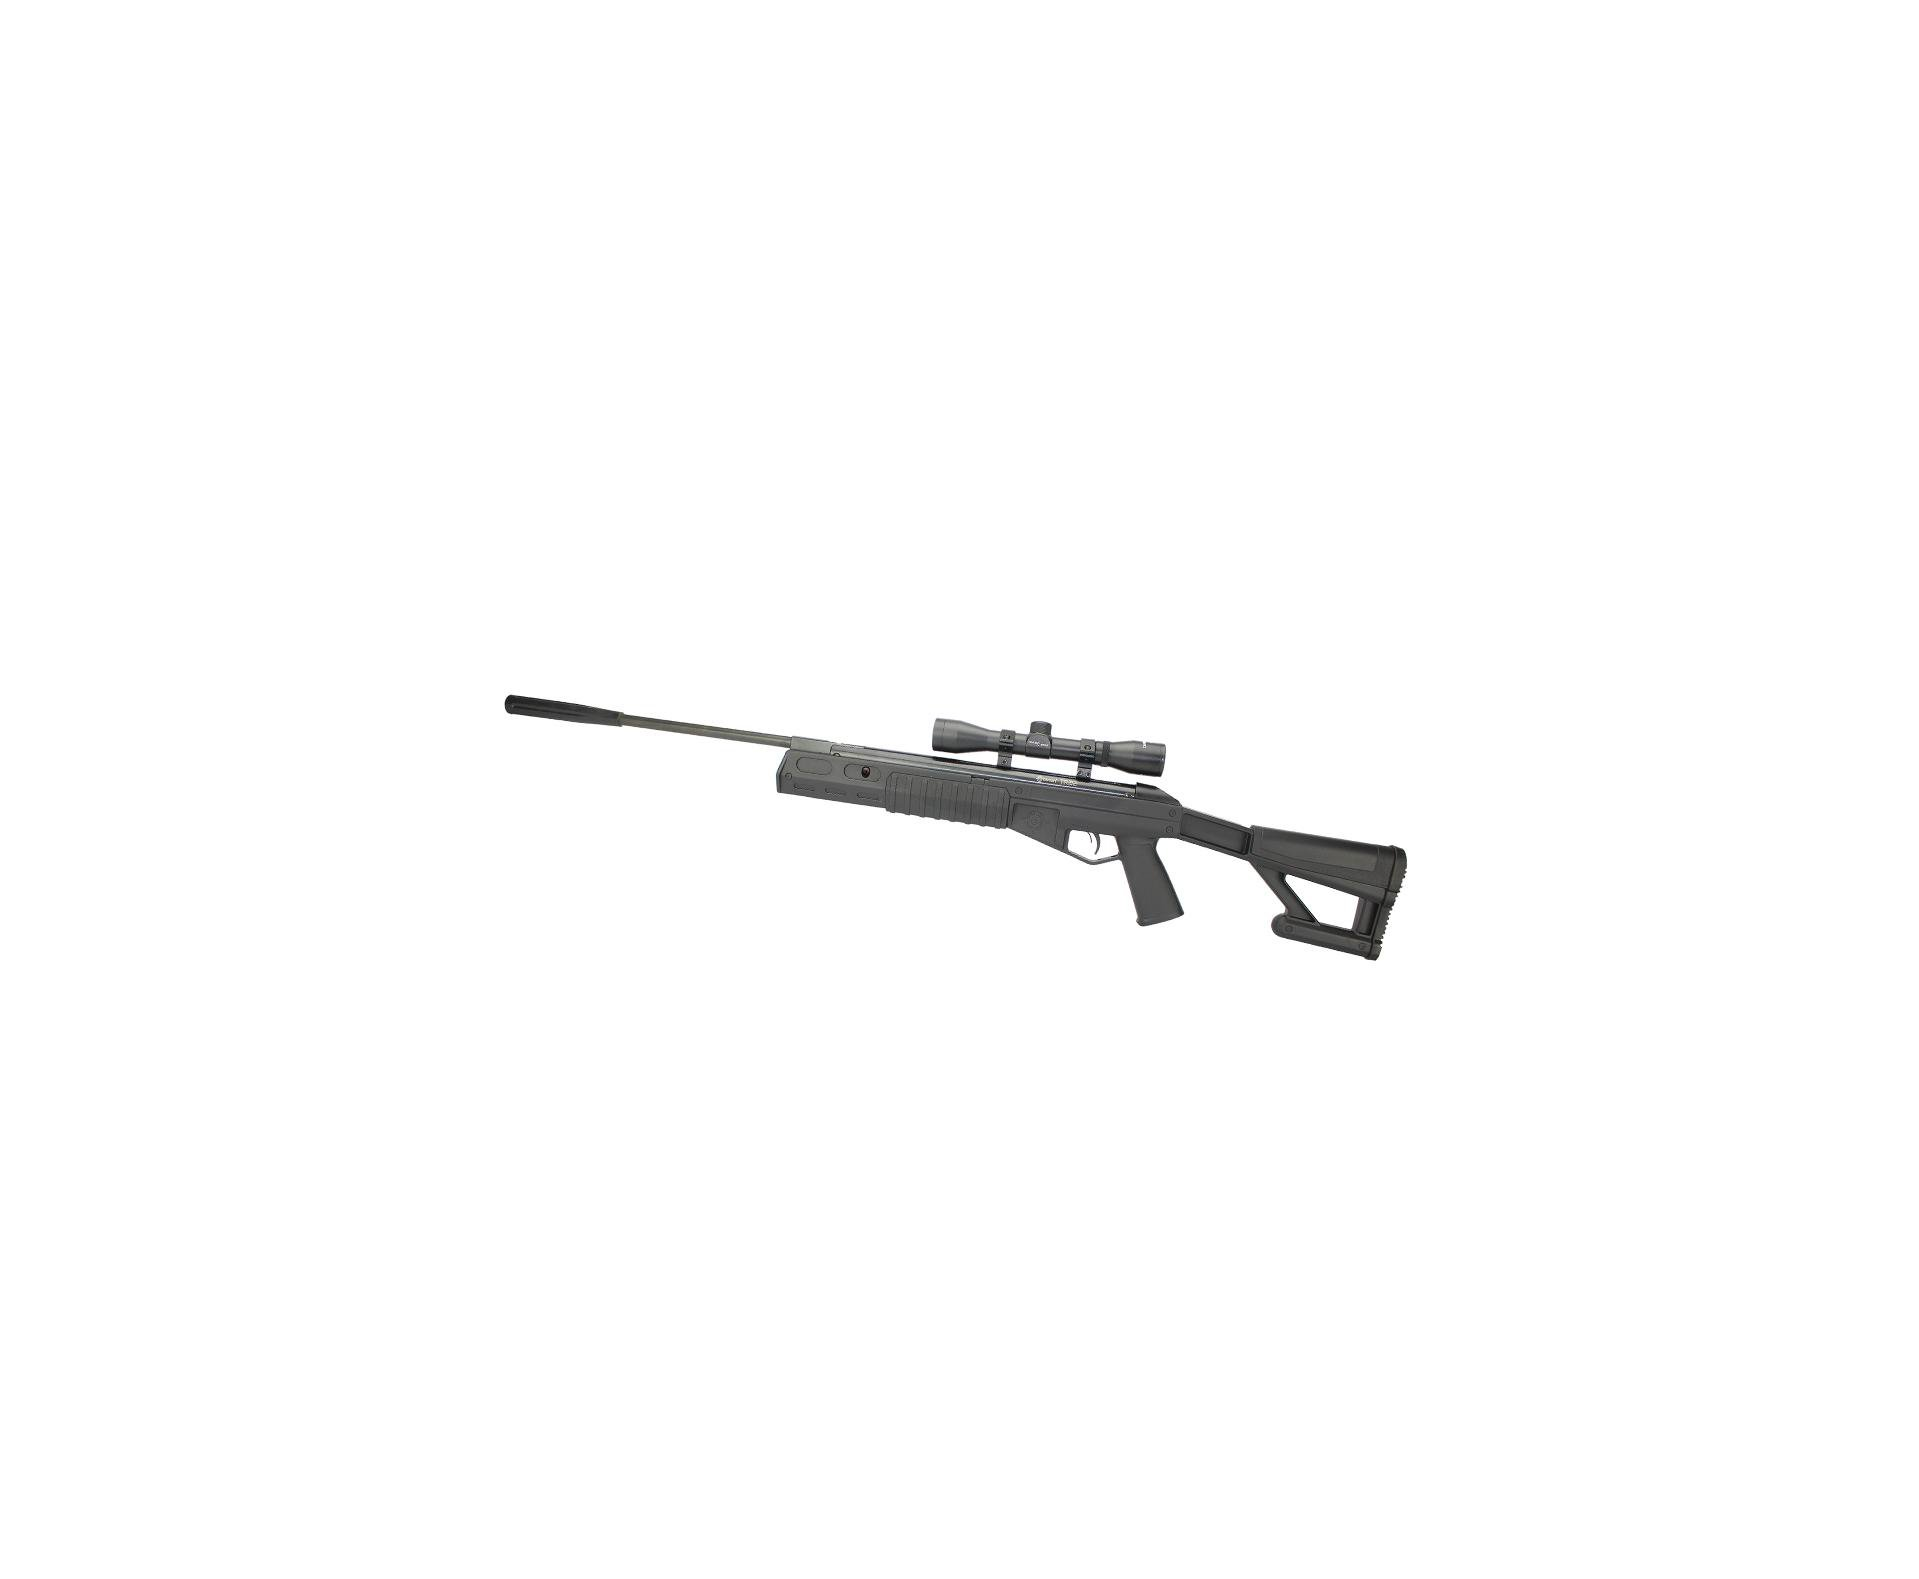 Carabina De Pressão Tr22 + Luneta 4x32 Center Point - Cal 5.5mm - Crosman